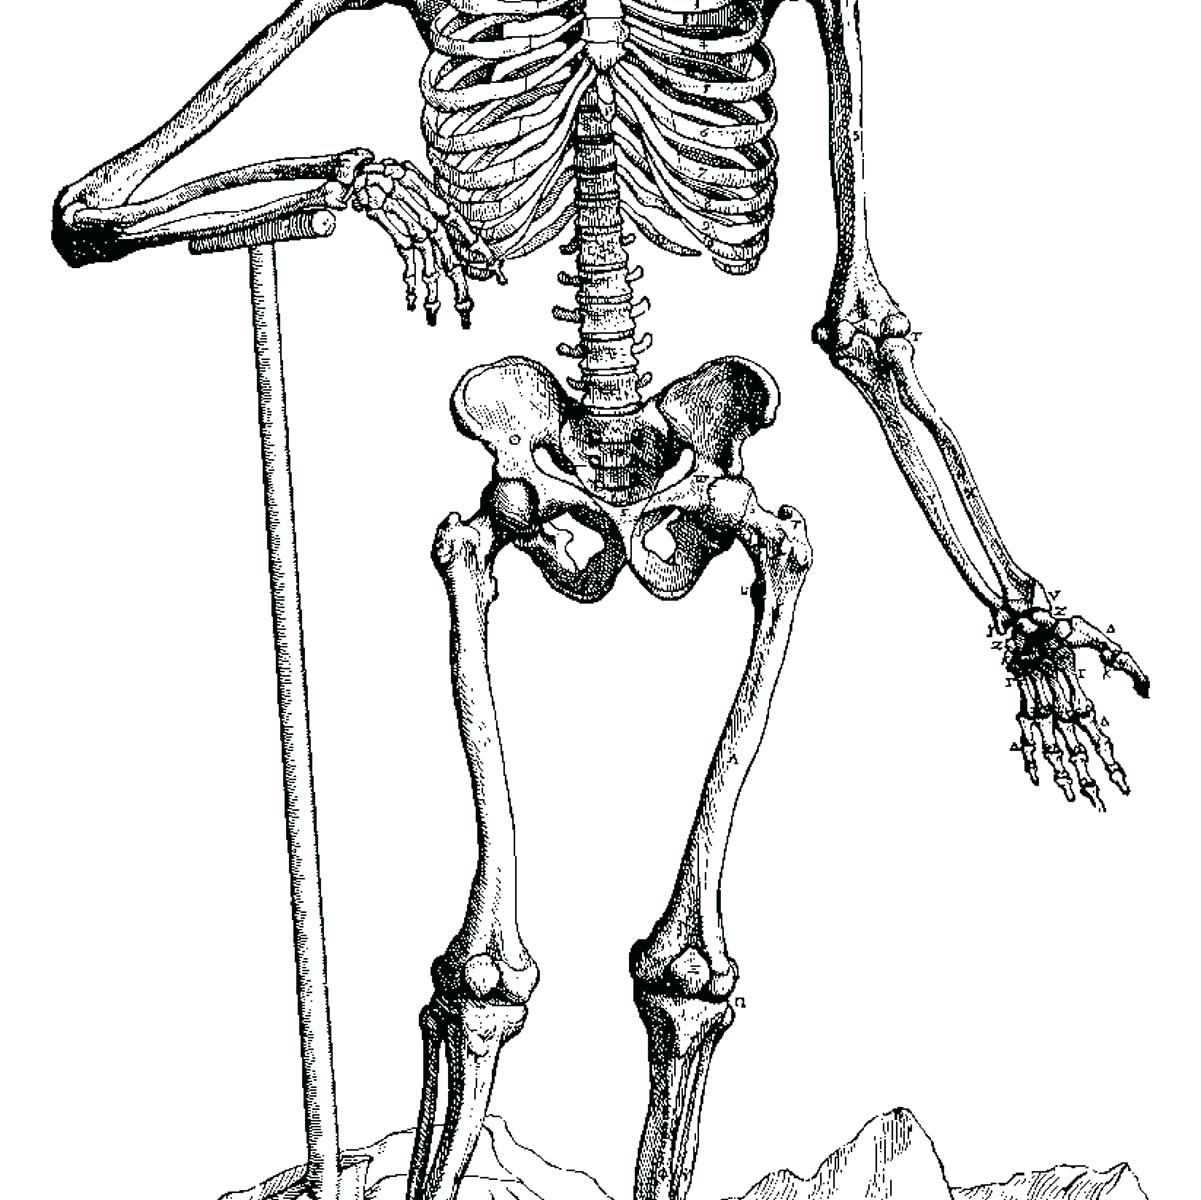 human skeletal system drawing at getdrawings com